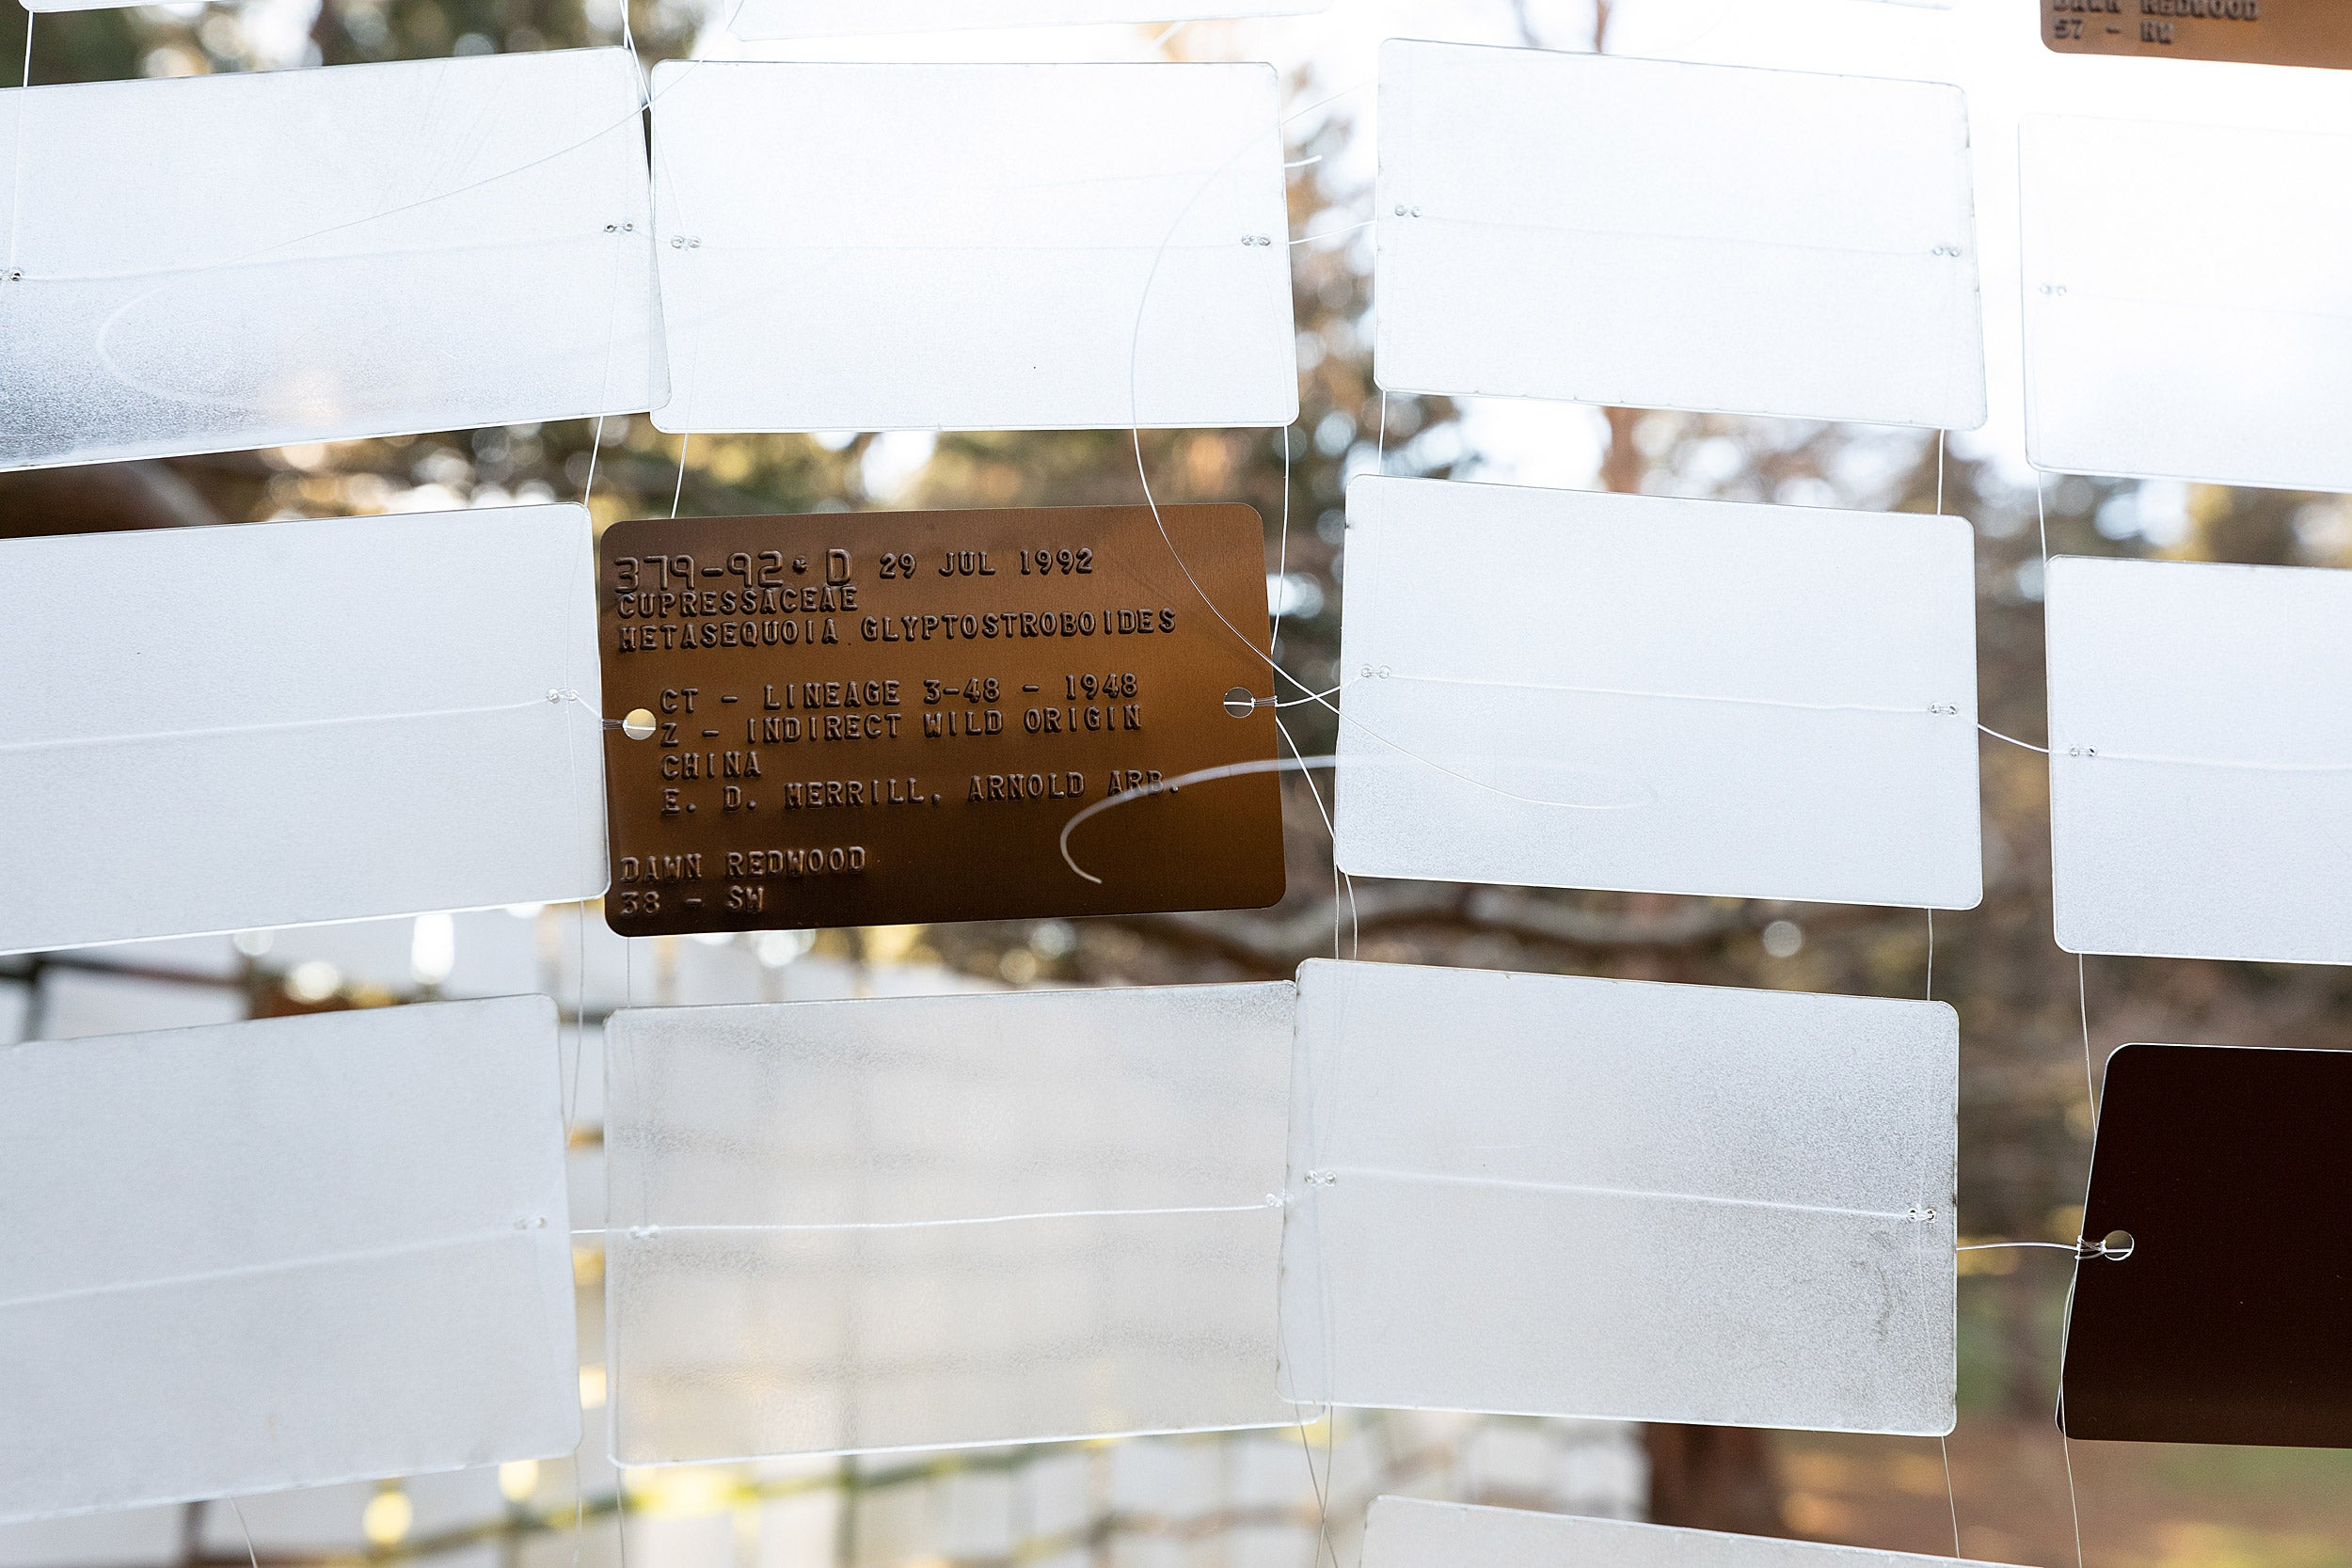 Installation at the Arboretum uses plant ID tags.